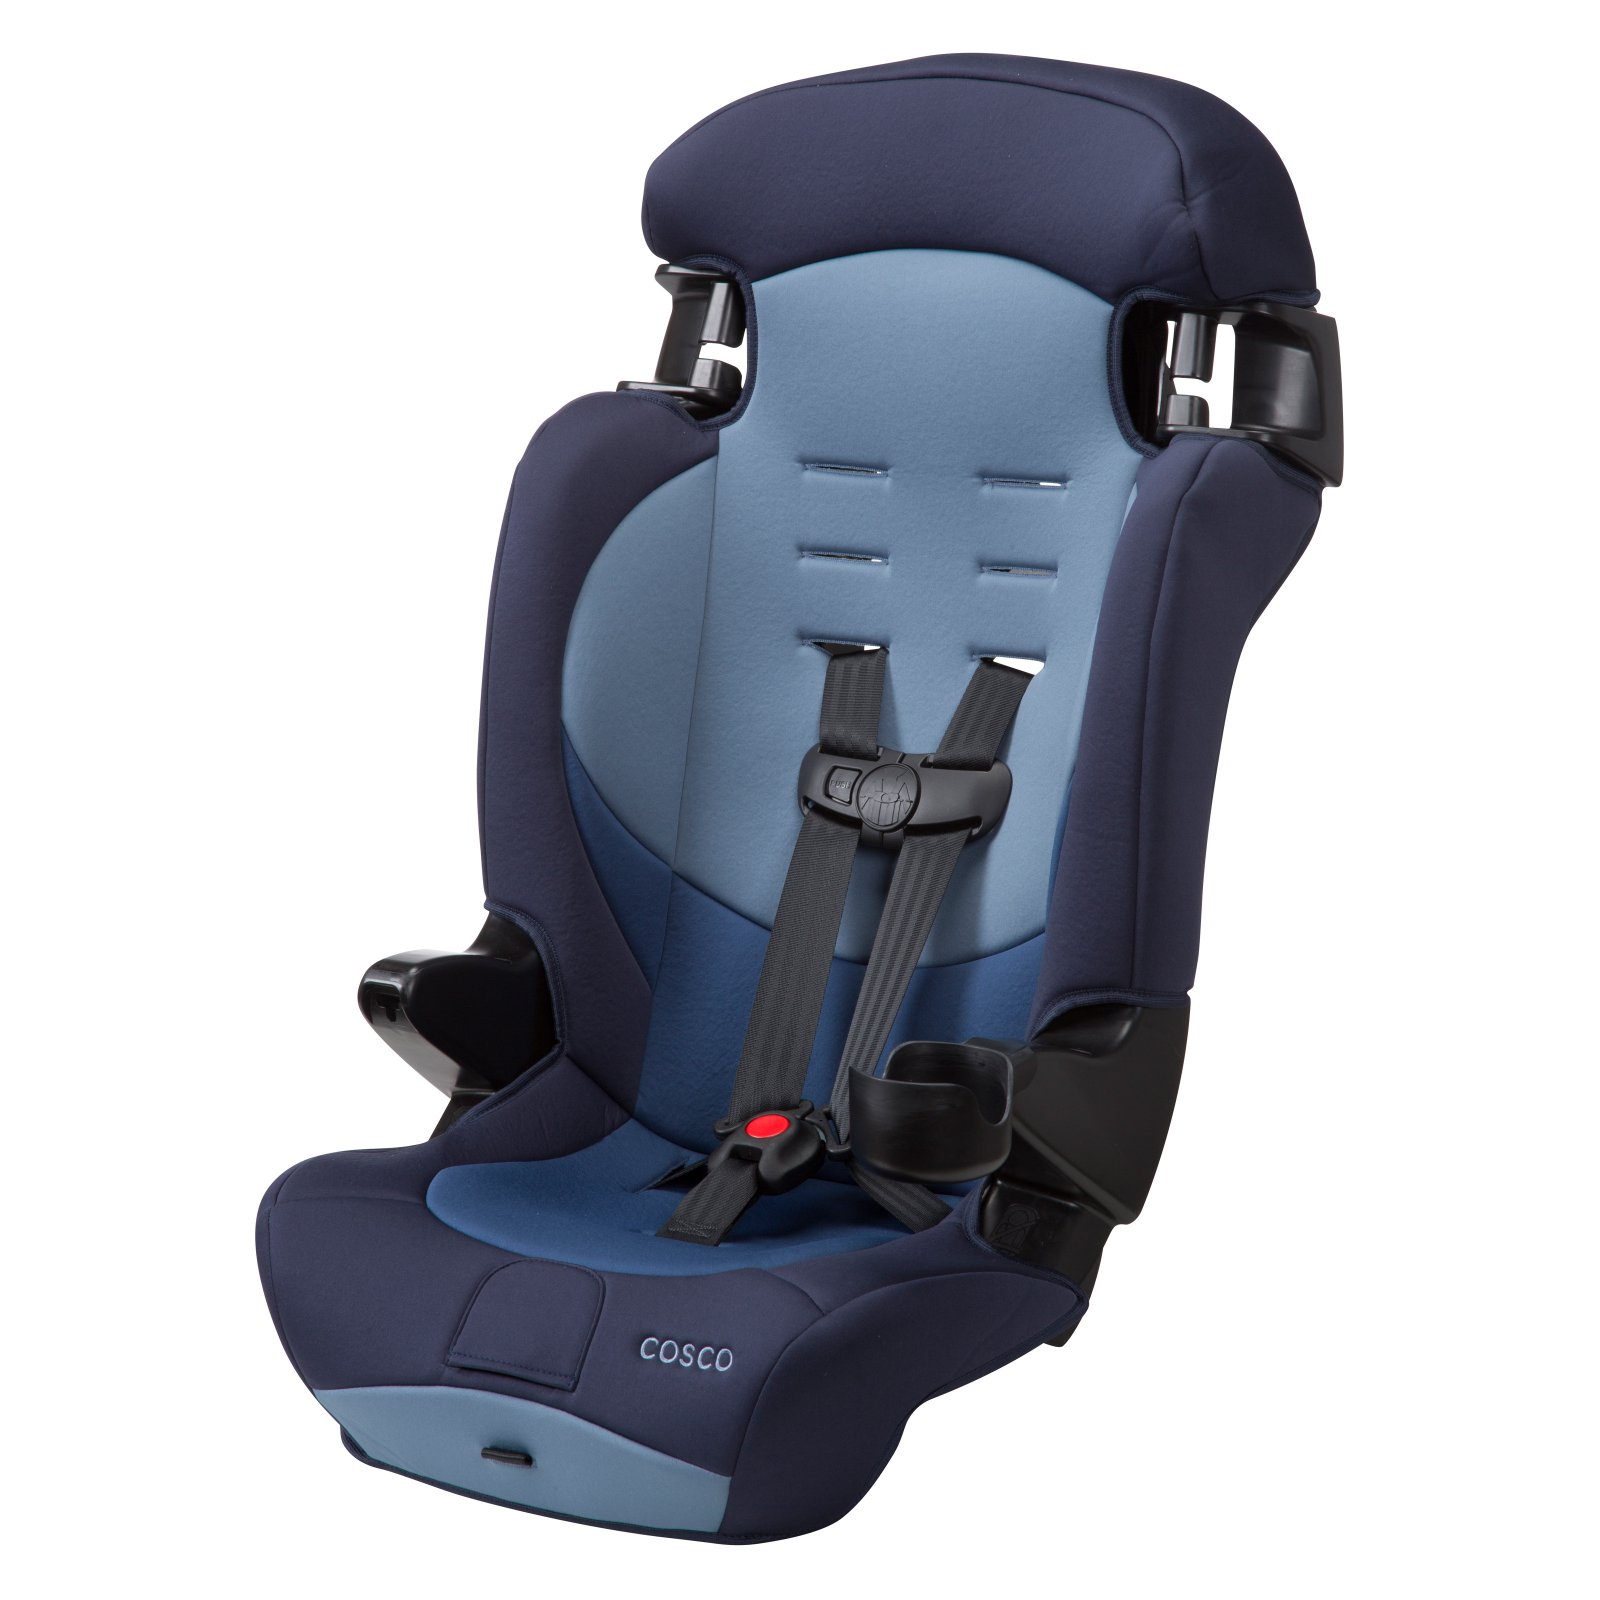 Cosco Finale DX 2-in-1 Booster Car Seat - Sport Blue